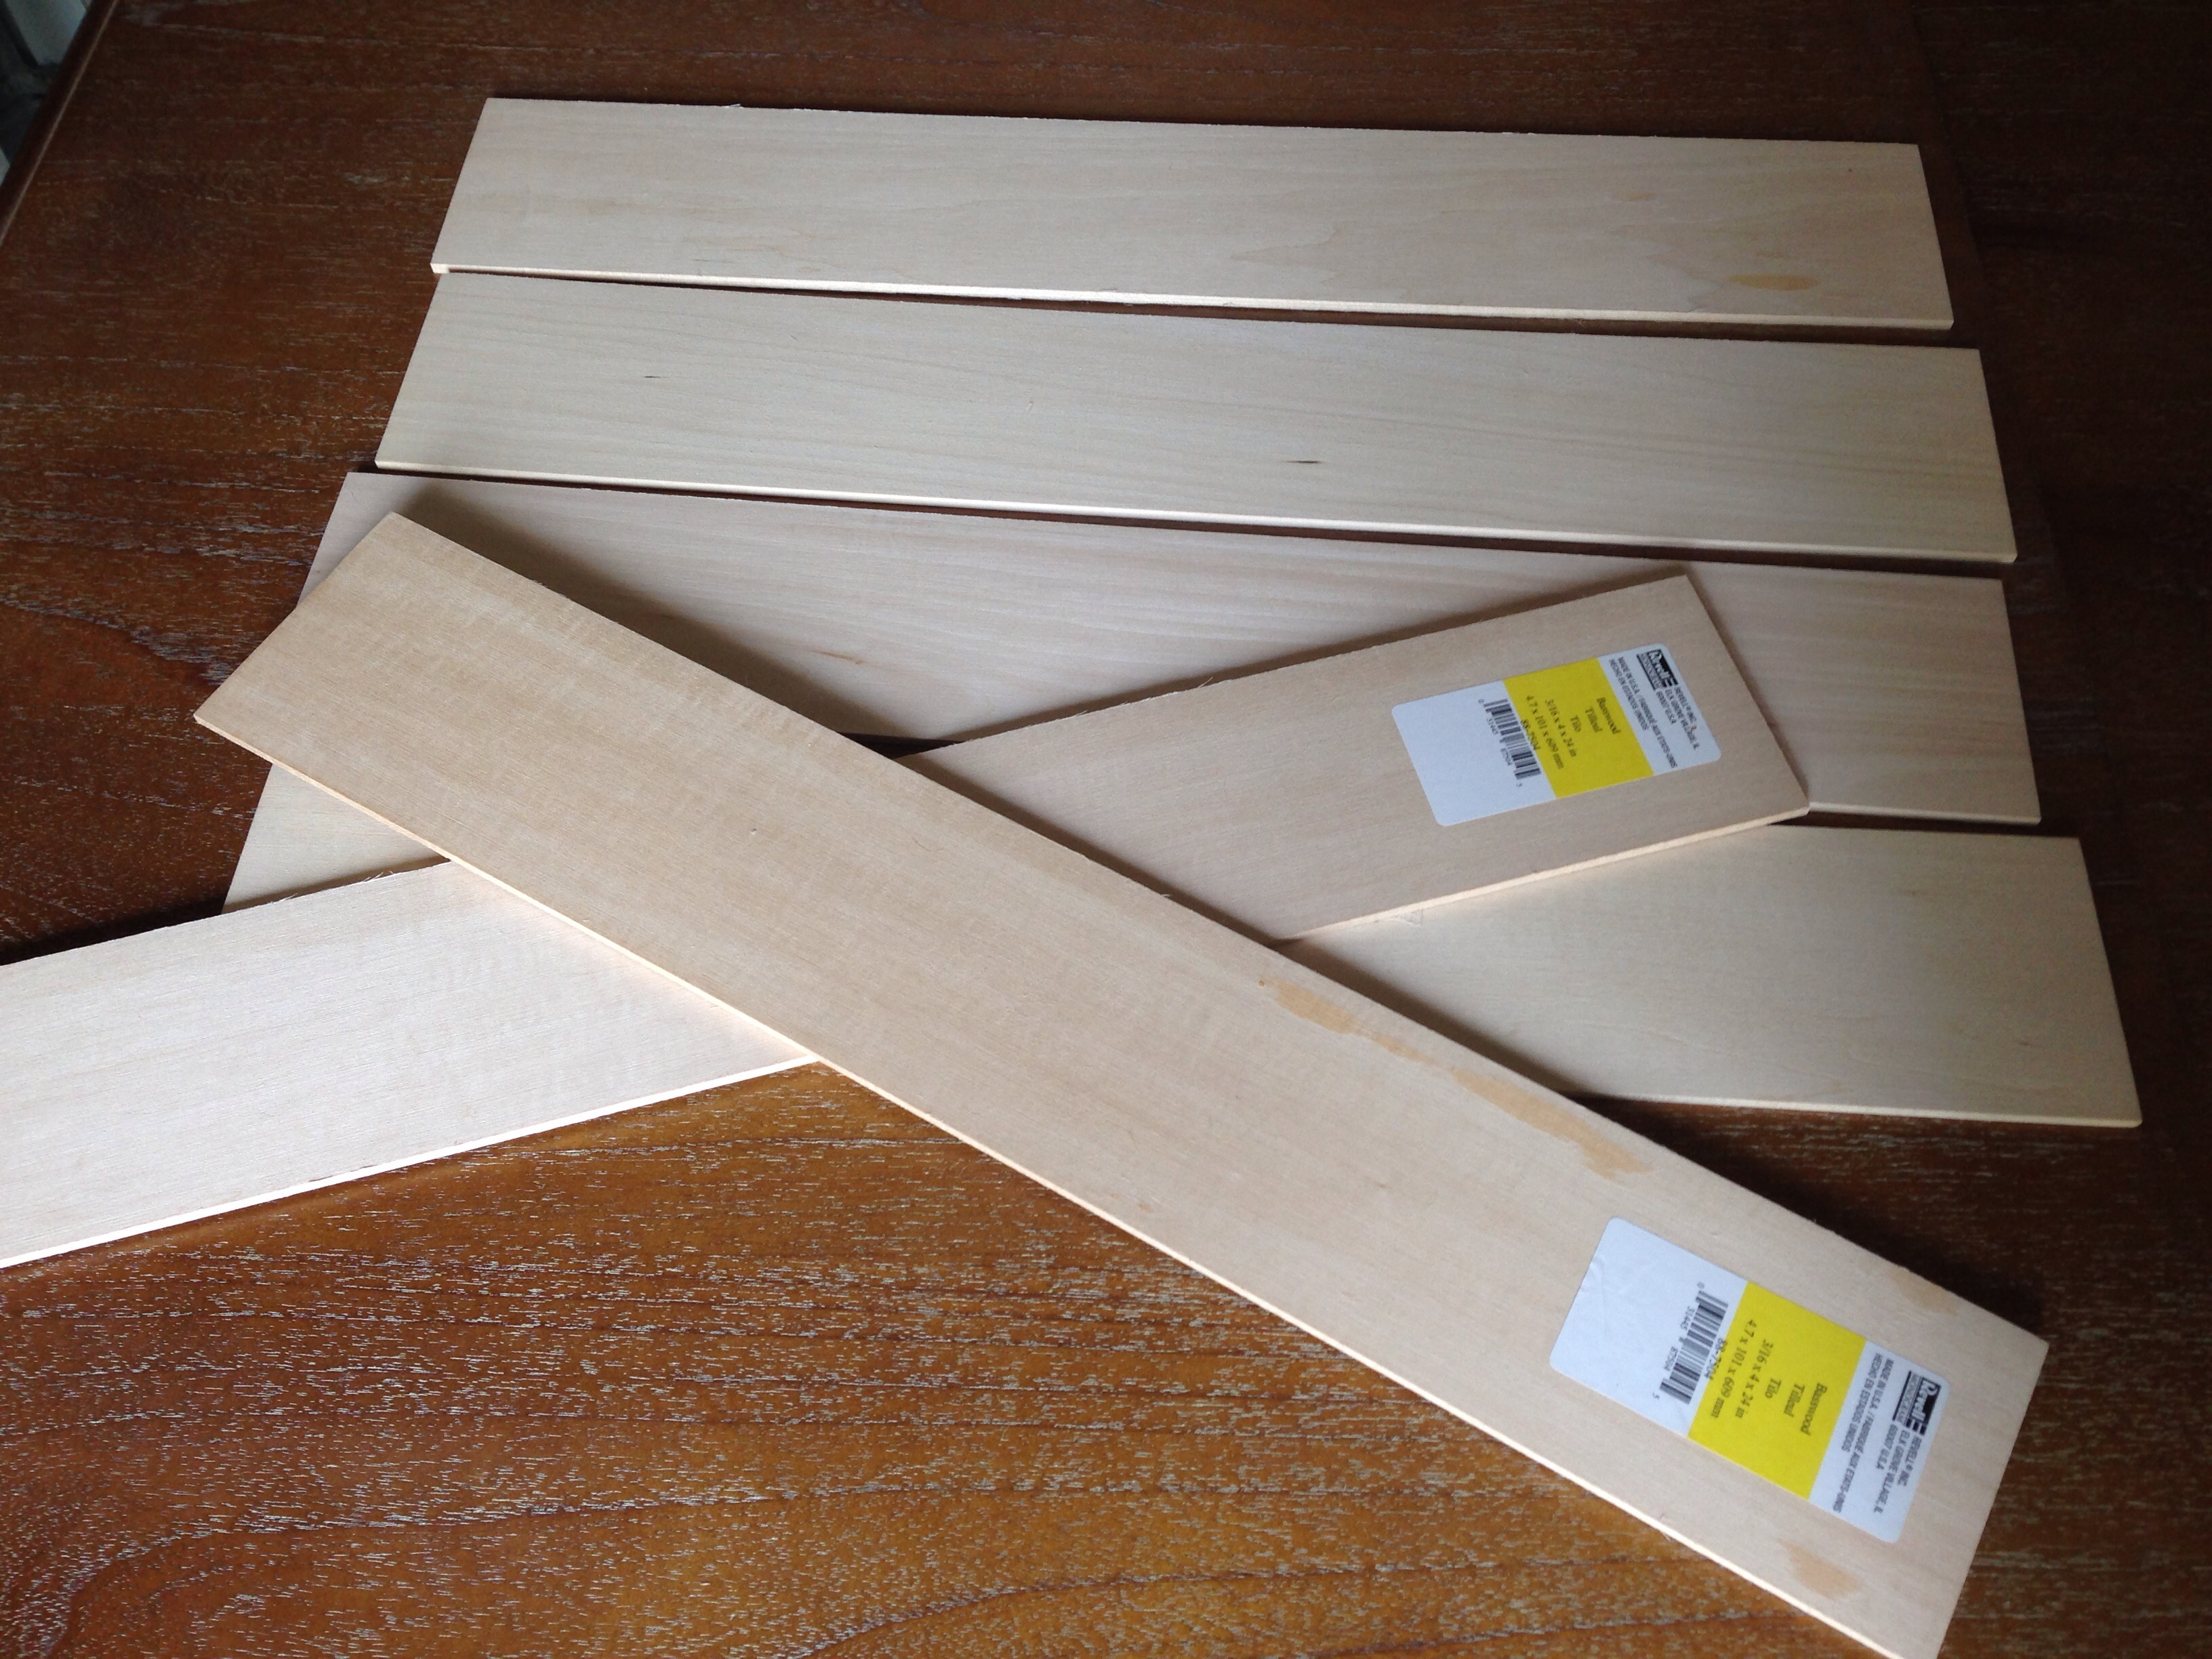 Wooden slat frame for a painting two girls blog for Thin wood sheets for crafts